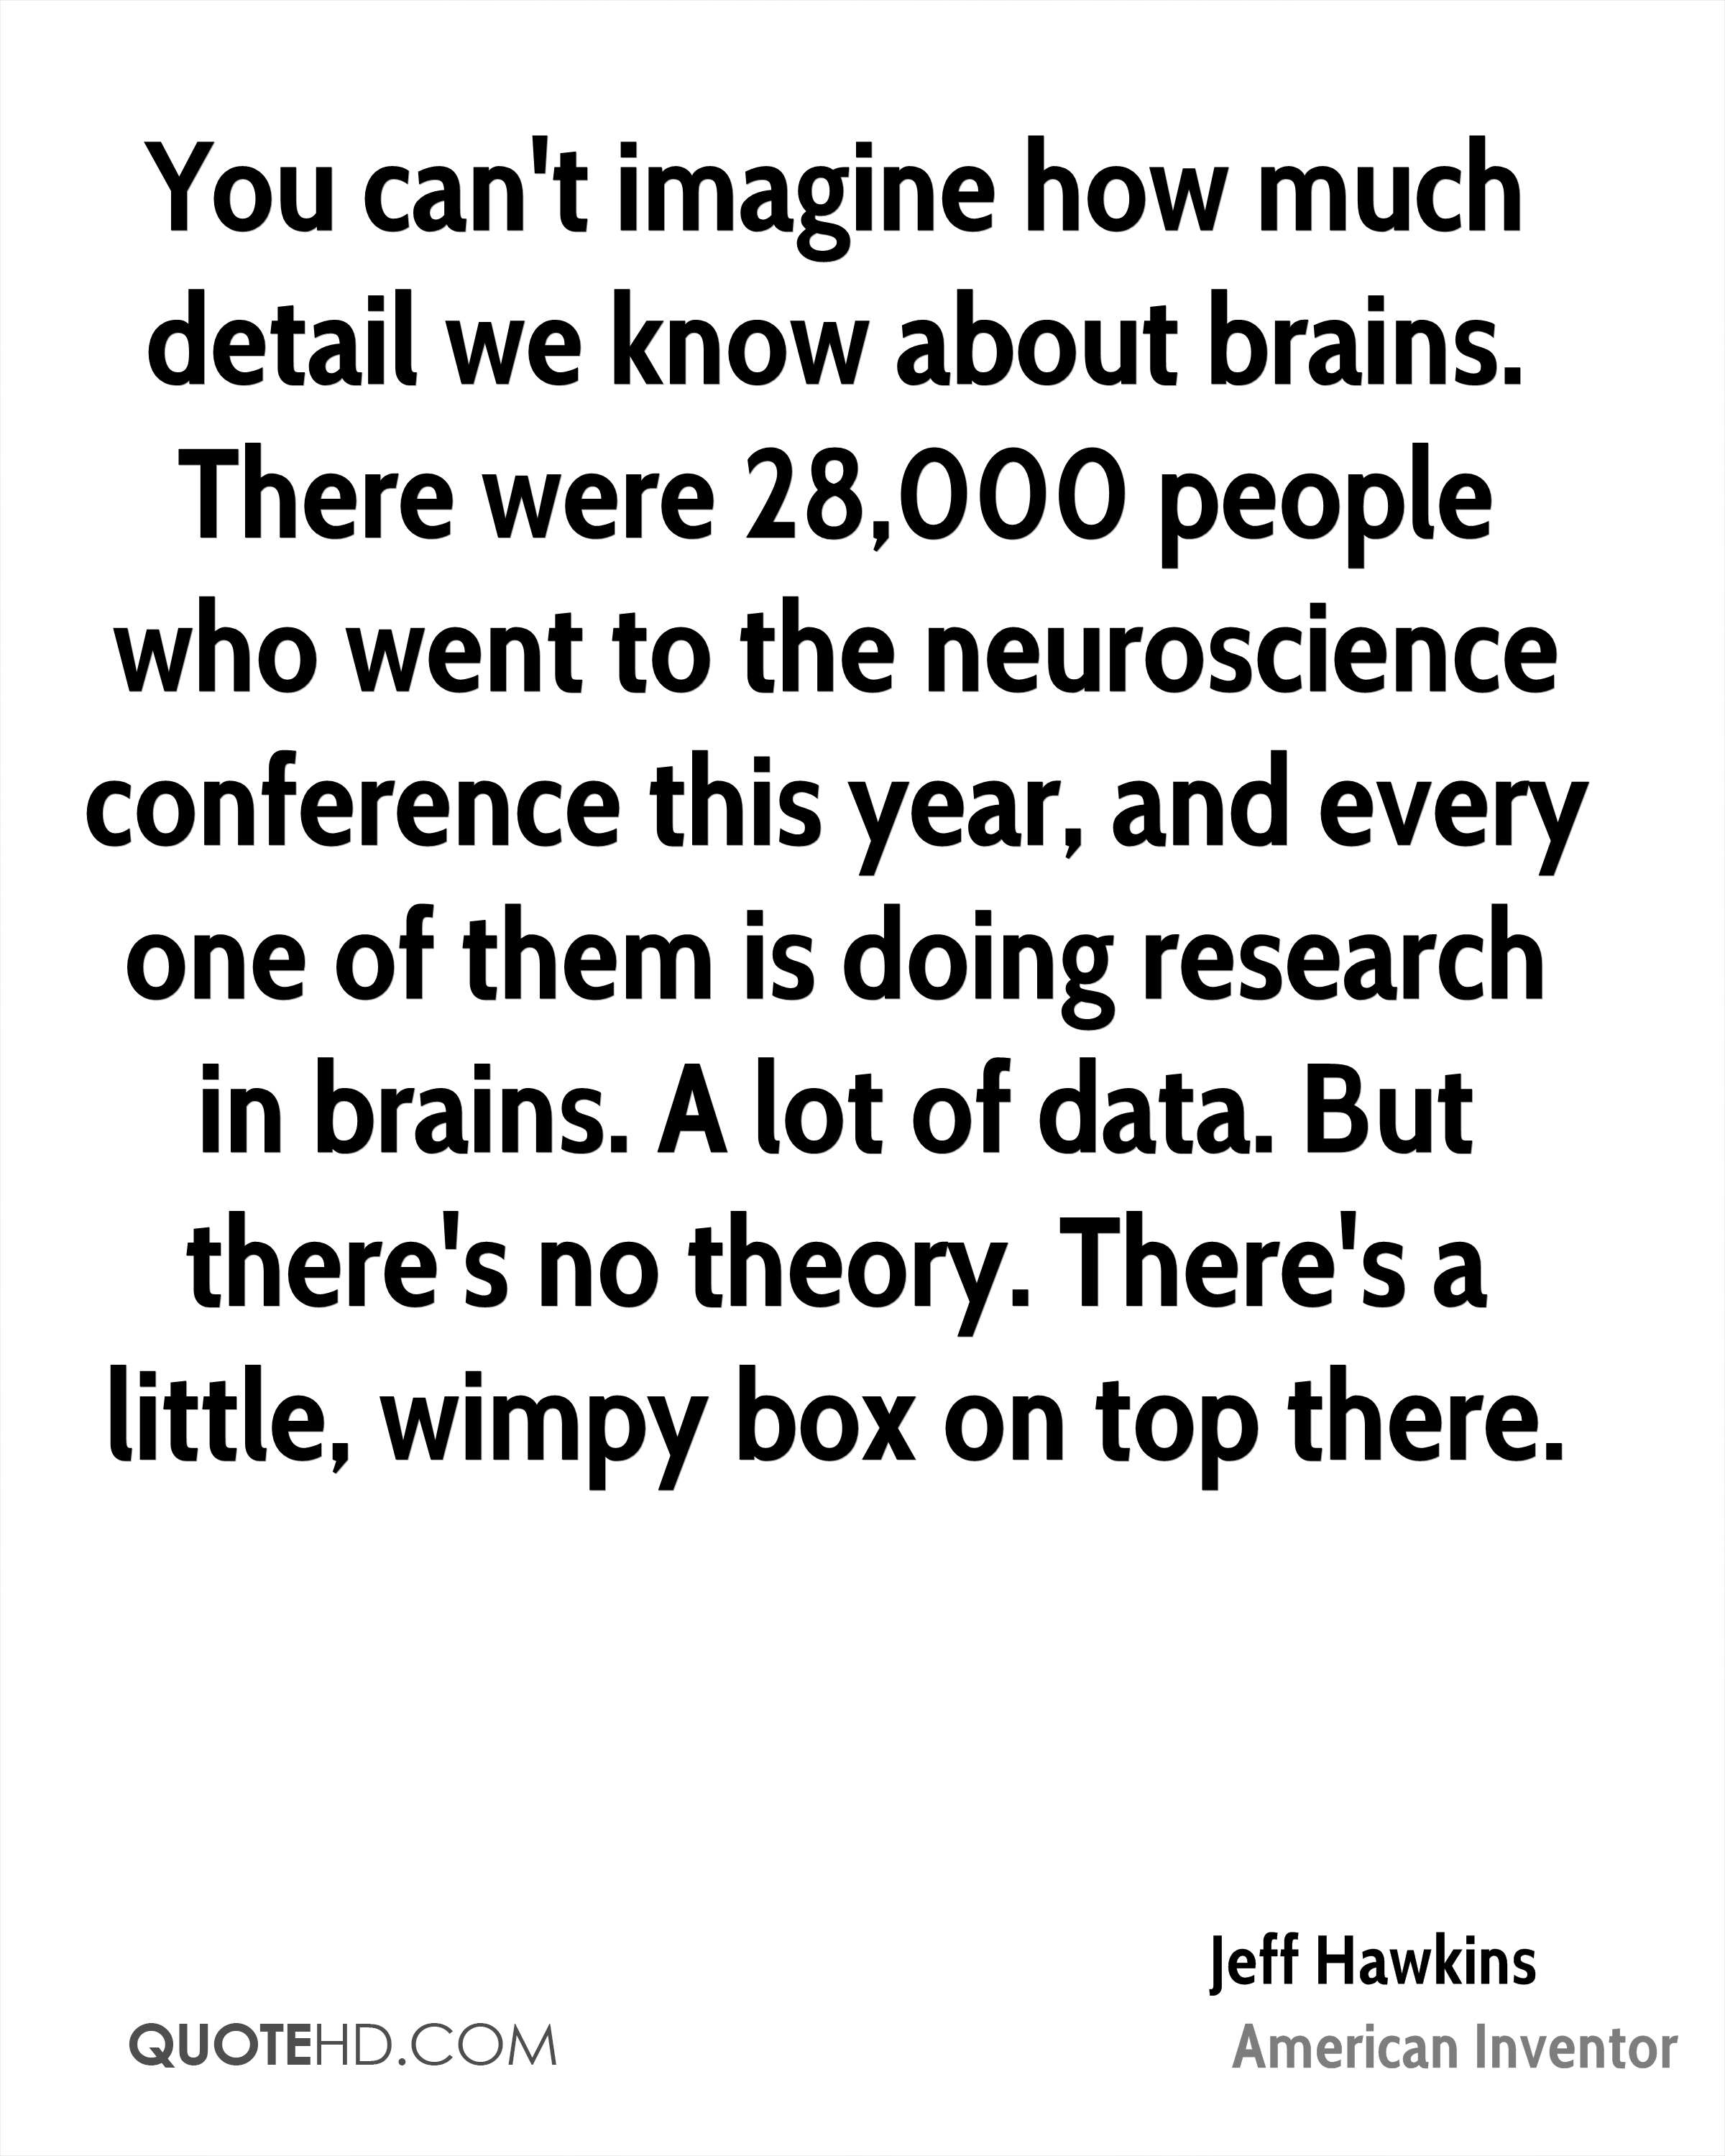 You can't imagine how much detail we know about brains. There were 28,000 people who went to the neuroscience conference this year, and every one of them is doing research in brains. A lot of data. But there's no theory. There's a little, wimpy box on top there.